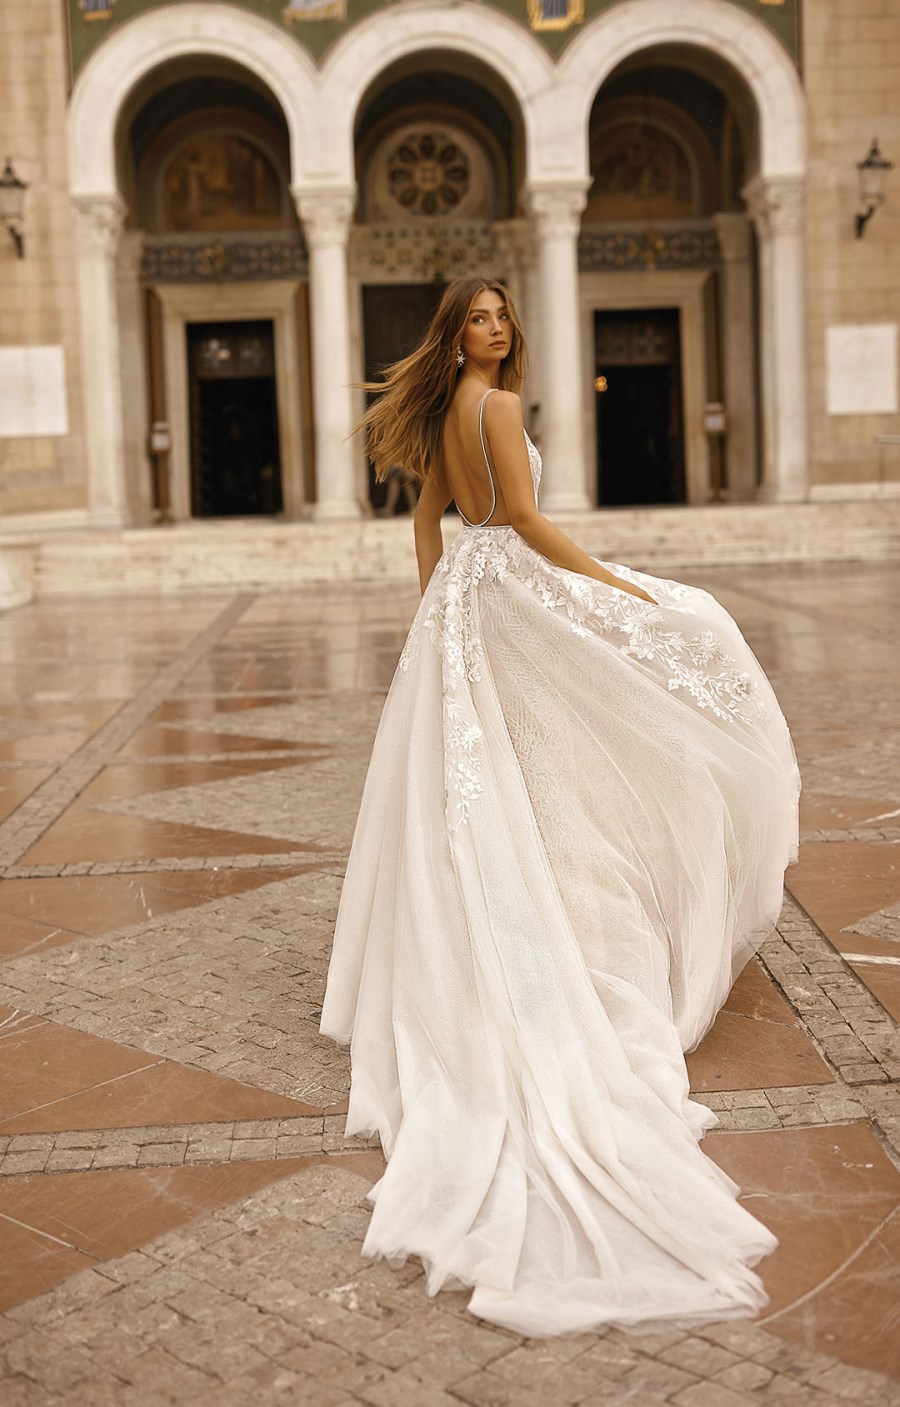 berta-wedding-dress-2019-1 (15)_1